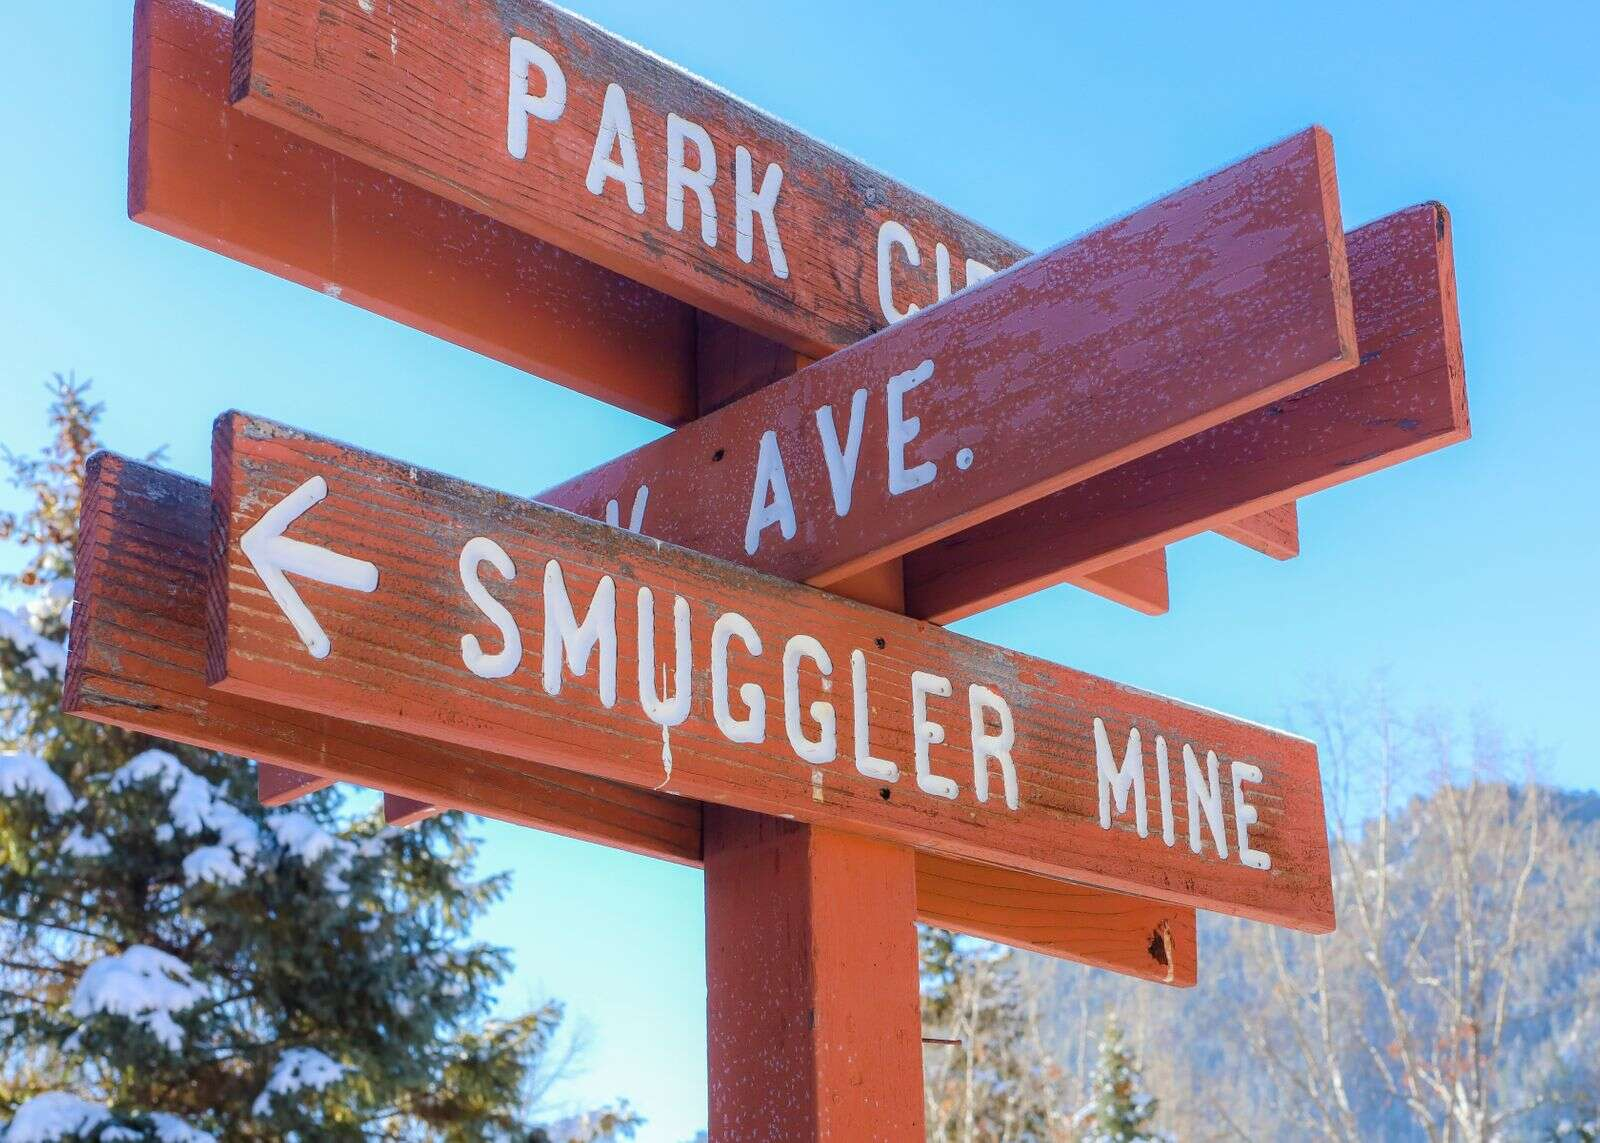 The sign pointing toward Smuggler Mine on Saturday, Nov. 28, 2020, in Aspen. (Photo by Austin Colbert/The Aspen Times)